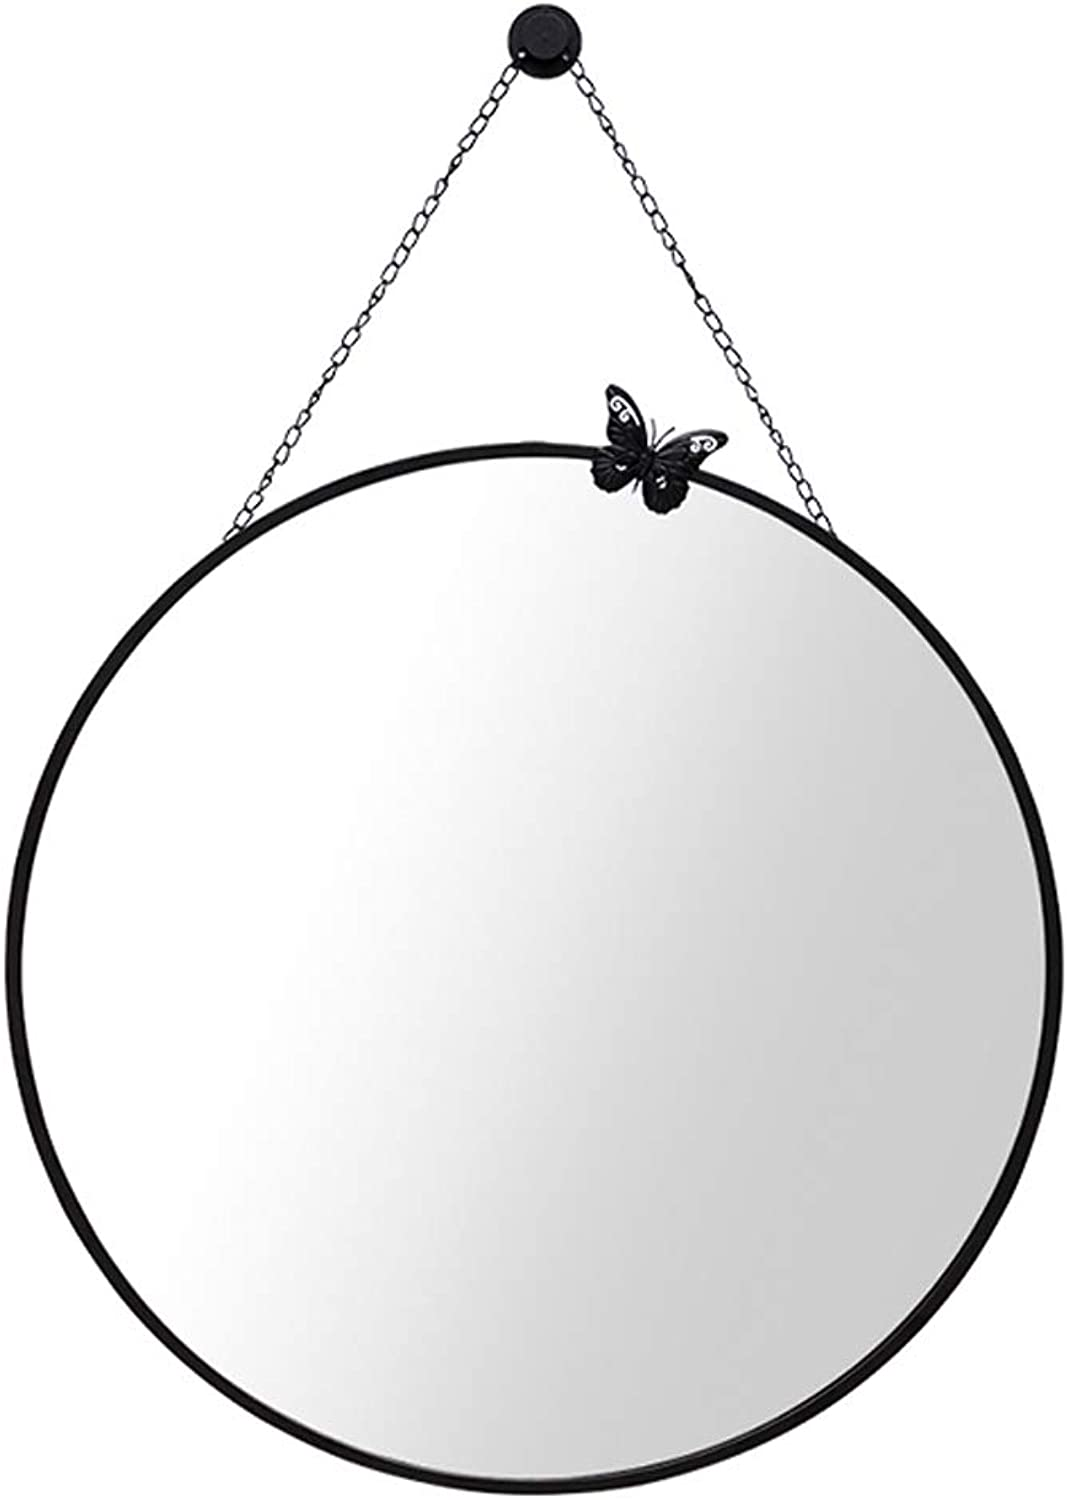 Makeup Mirror Metal Frame Wall-Mounted Circular Vanity Mirrors with Chain 40 cm(16Inch) Diameter Decorative Shower Shave Mirror for Entrance Hall Bathroom